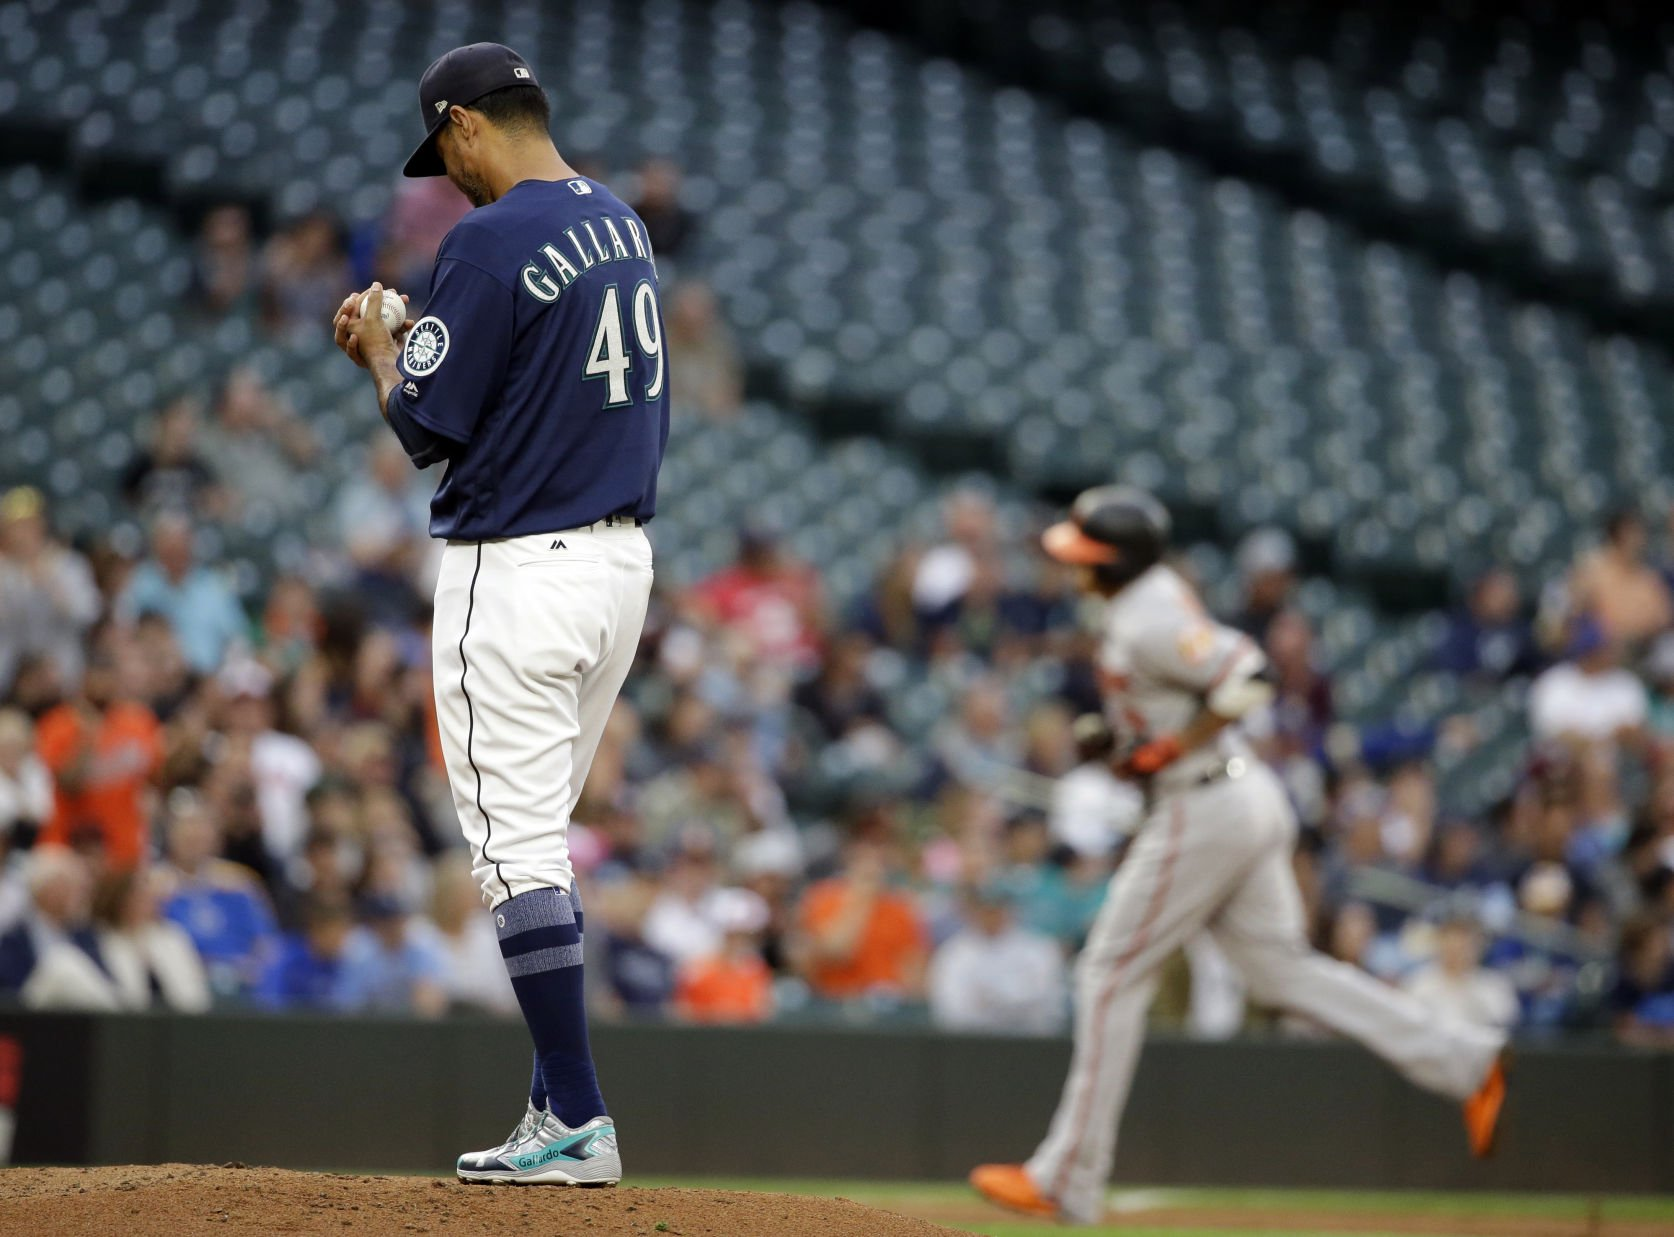 Albers earns 1st win in 4 years, Mariners top Orioles 3-1